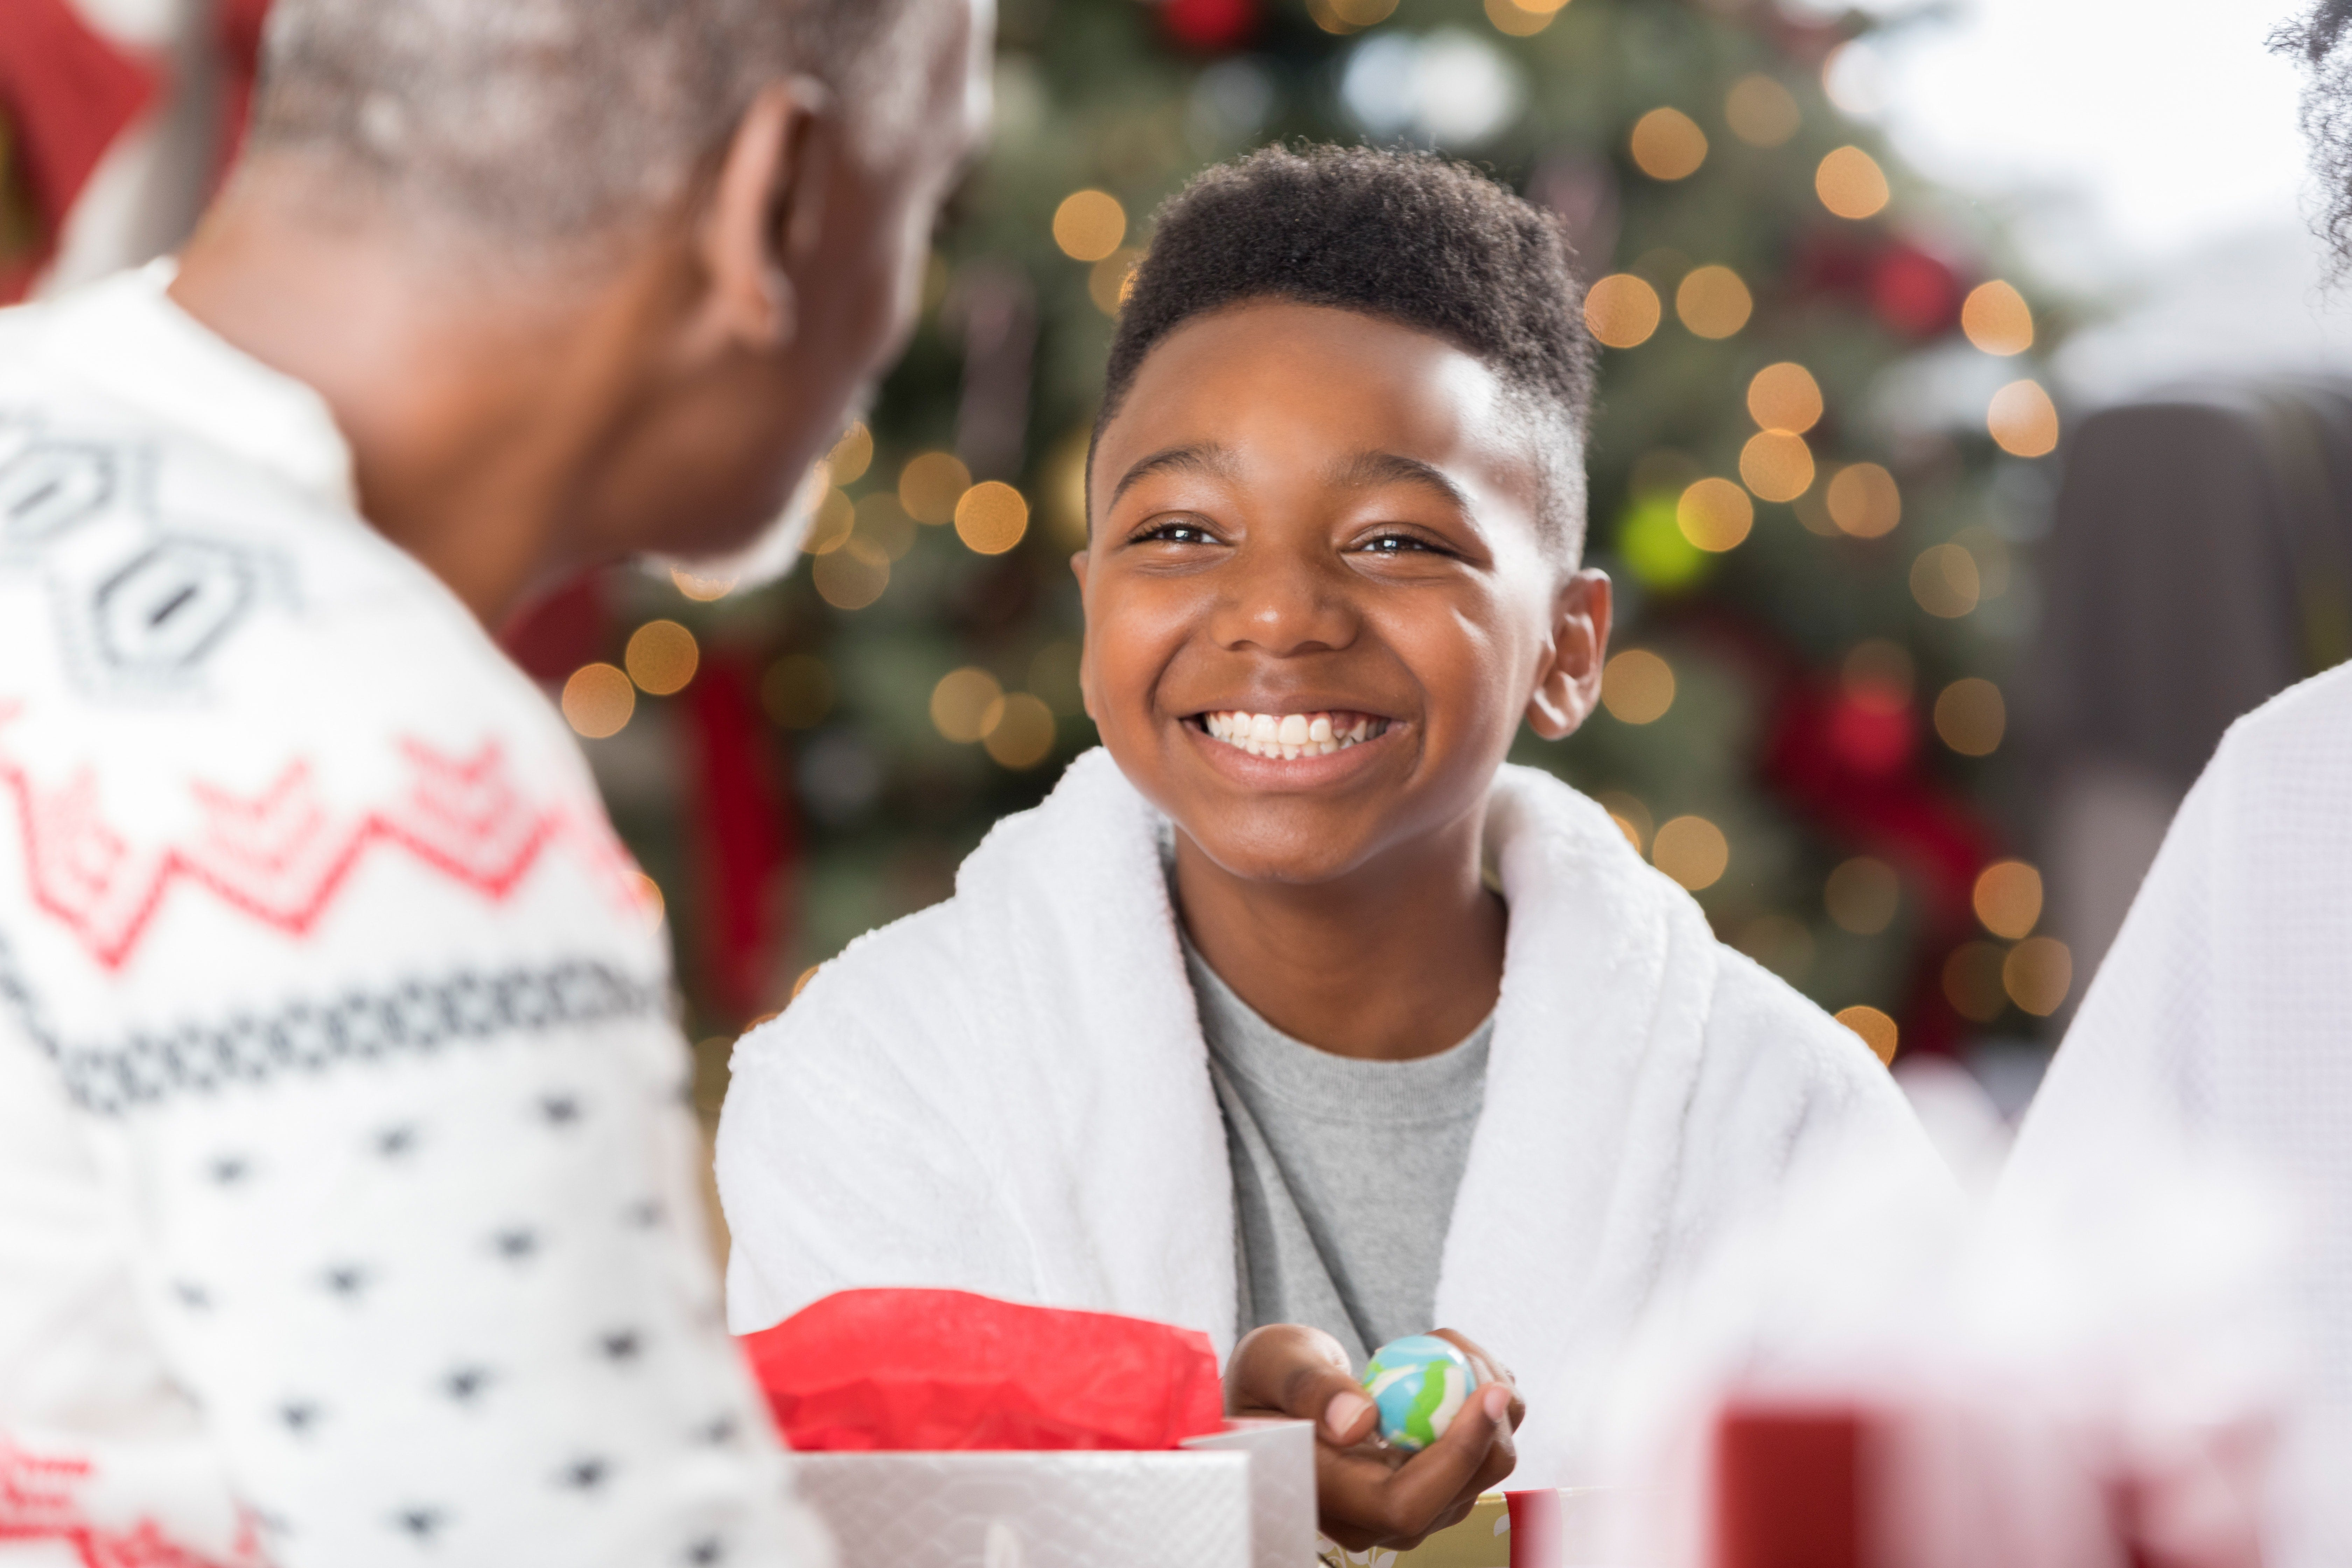 #BuyBlack Gift Guide: 23 Gifts For The Kids On Your List